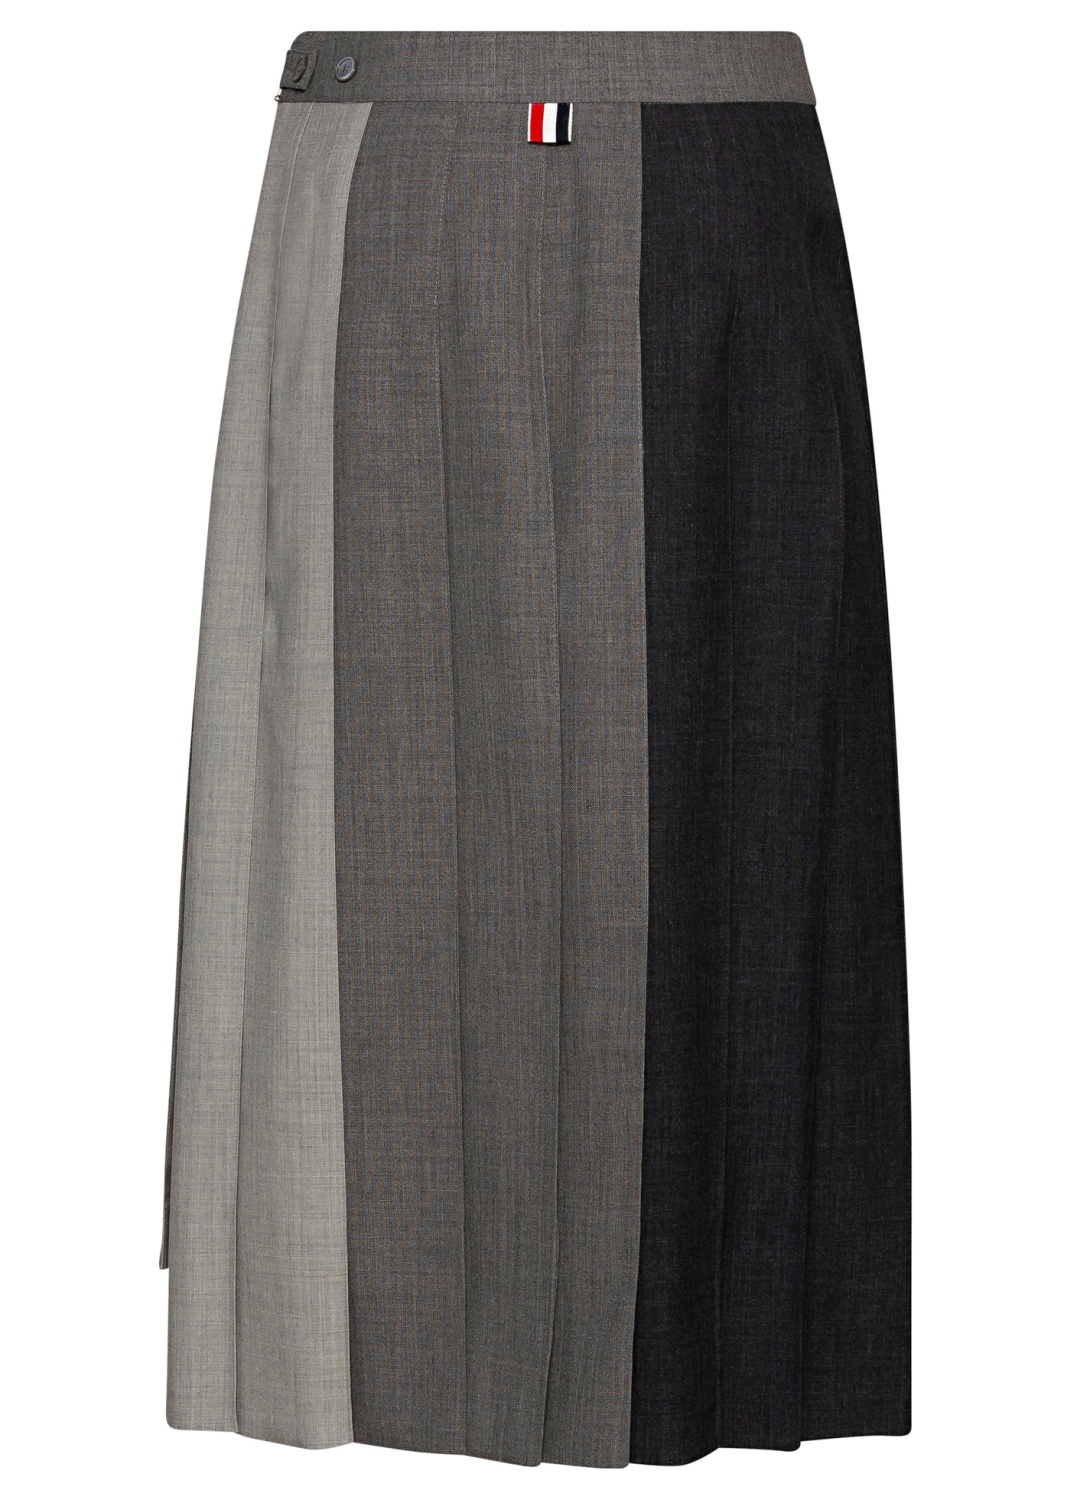 3 BELOW KNEE DROPPED BACK PLEATED SKIRT image number 1